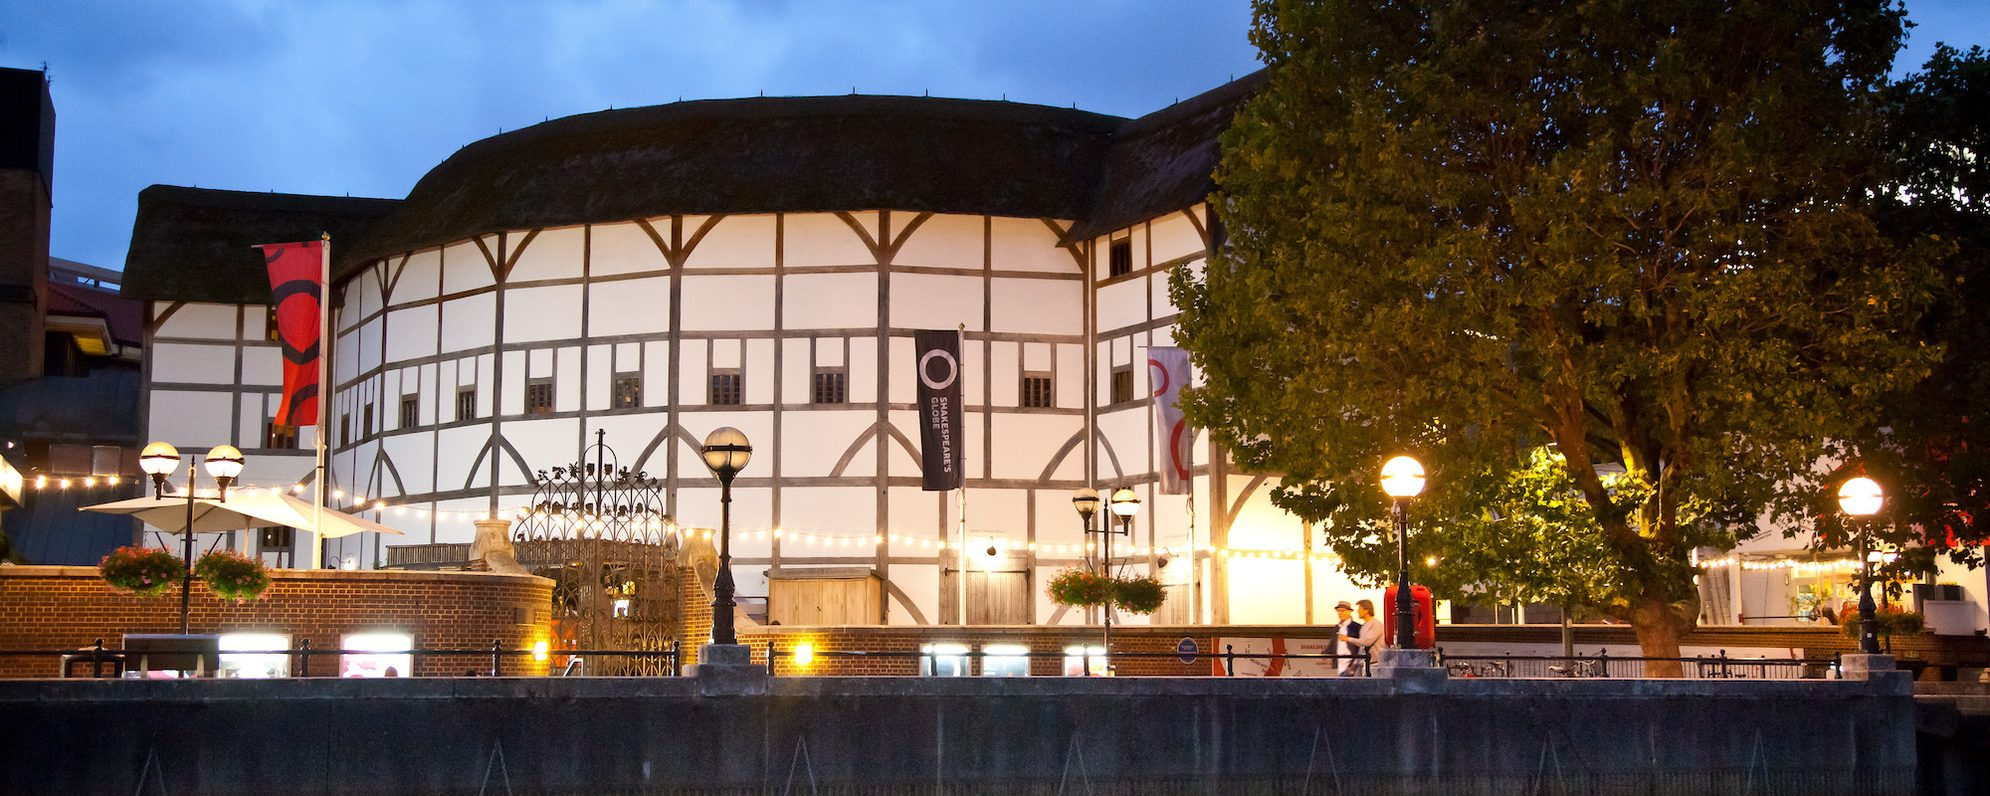 A thatched theatre at night illuminated by string lights